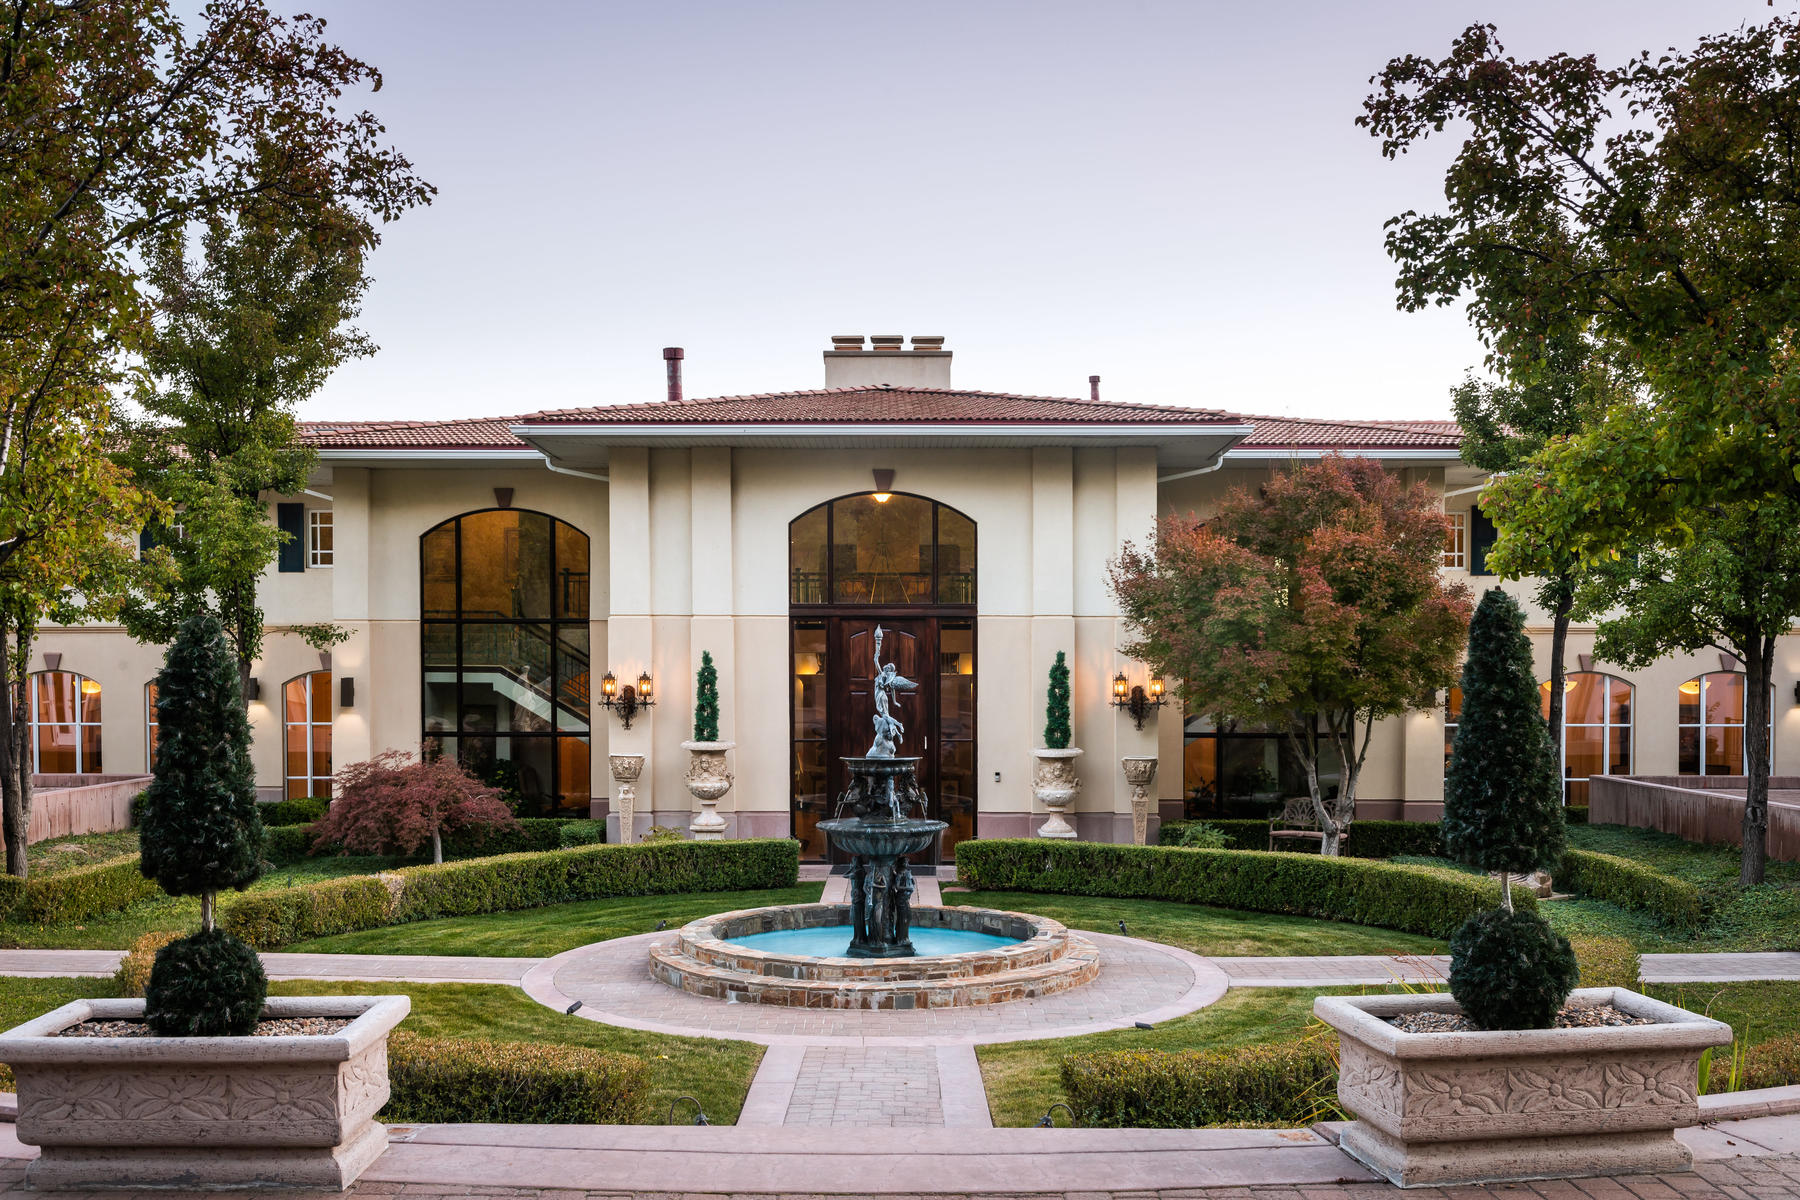 Single Family Homes for Sale at Elegant and Well Appointed 436 Oak Forest Rd Salt Lake City, Utah 84103 United States